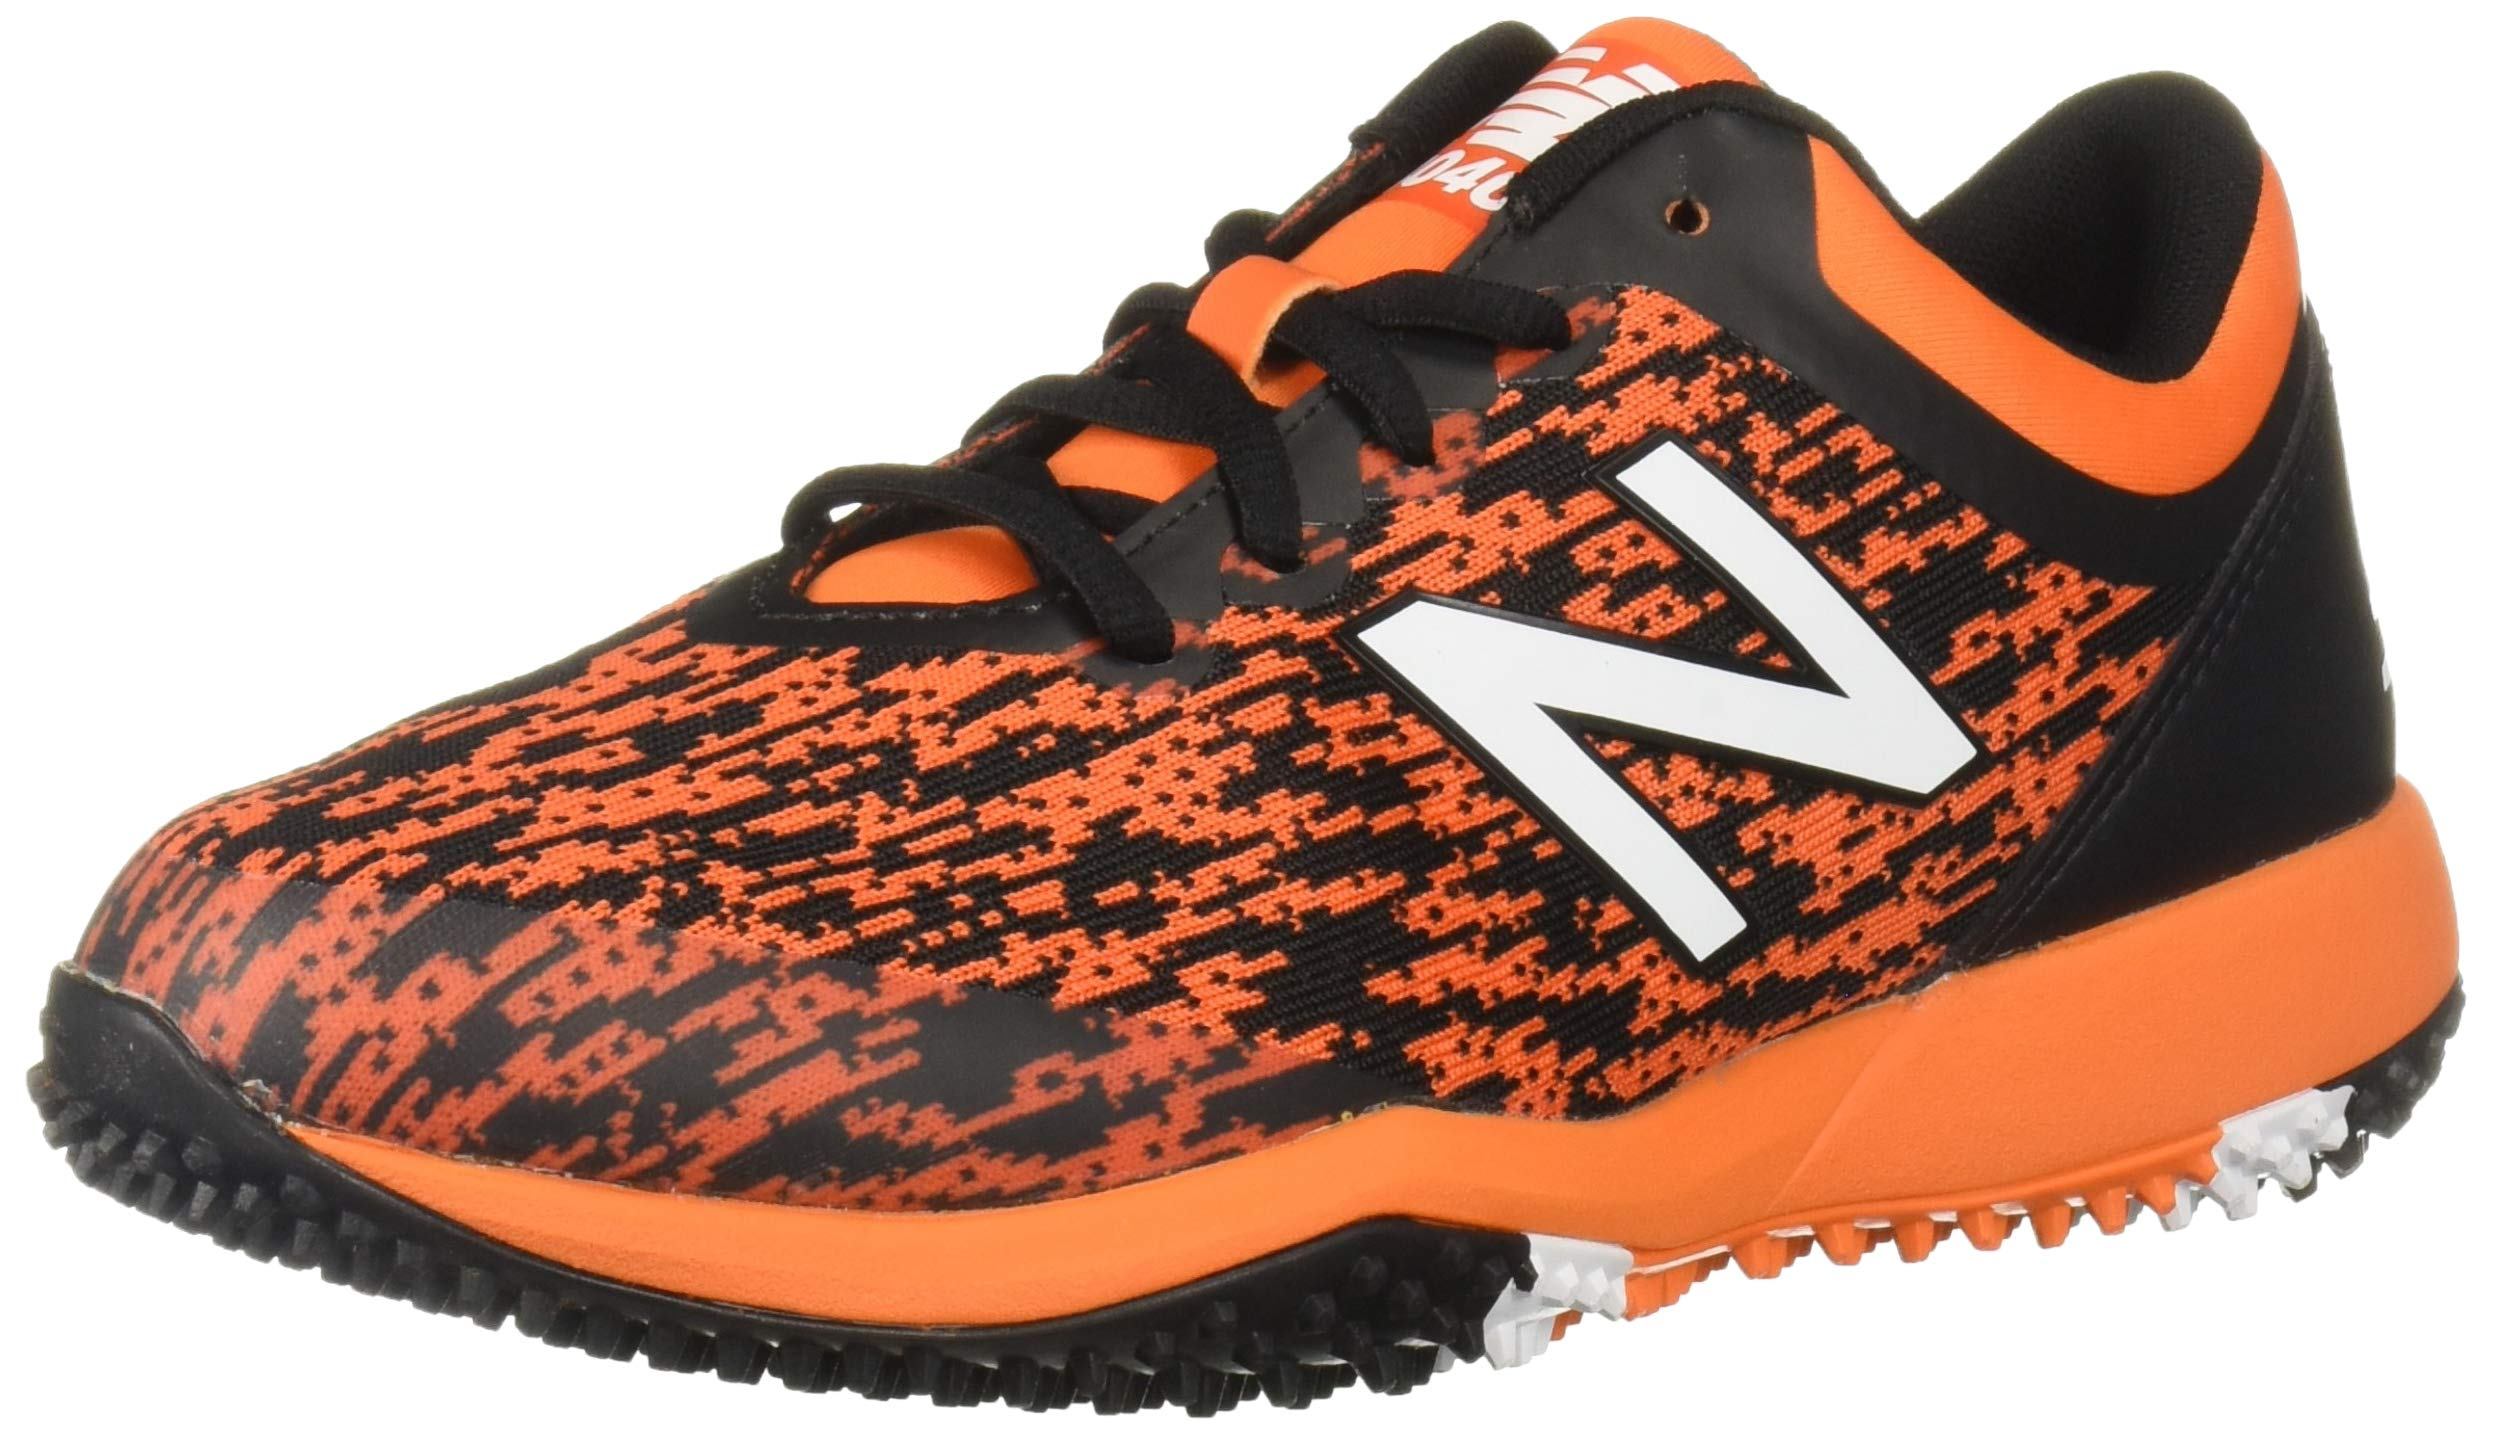 New Balance Men's 4040v5 Turf Track and Field Shoe, Black/Orange, 5 D US by New Balance